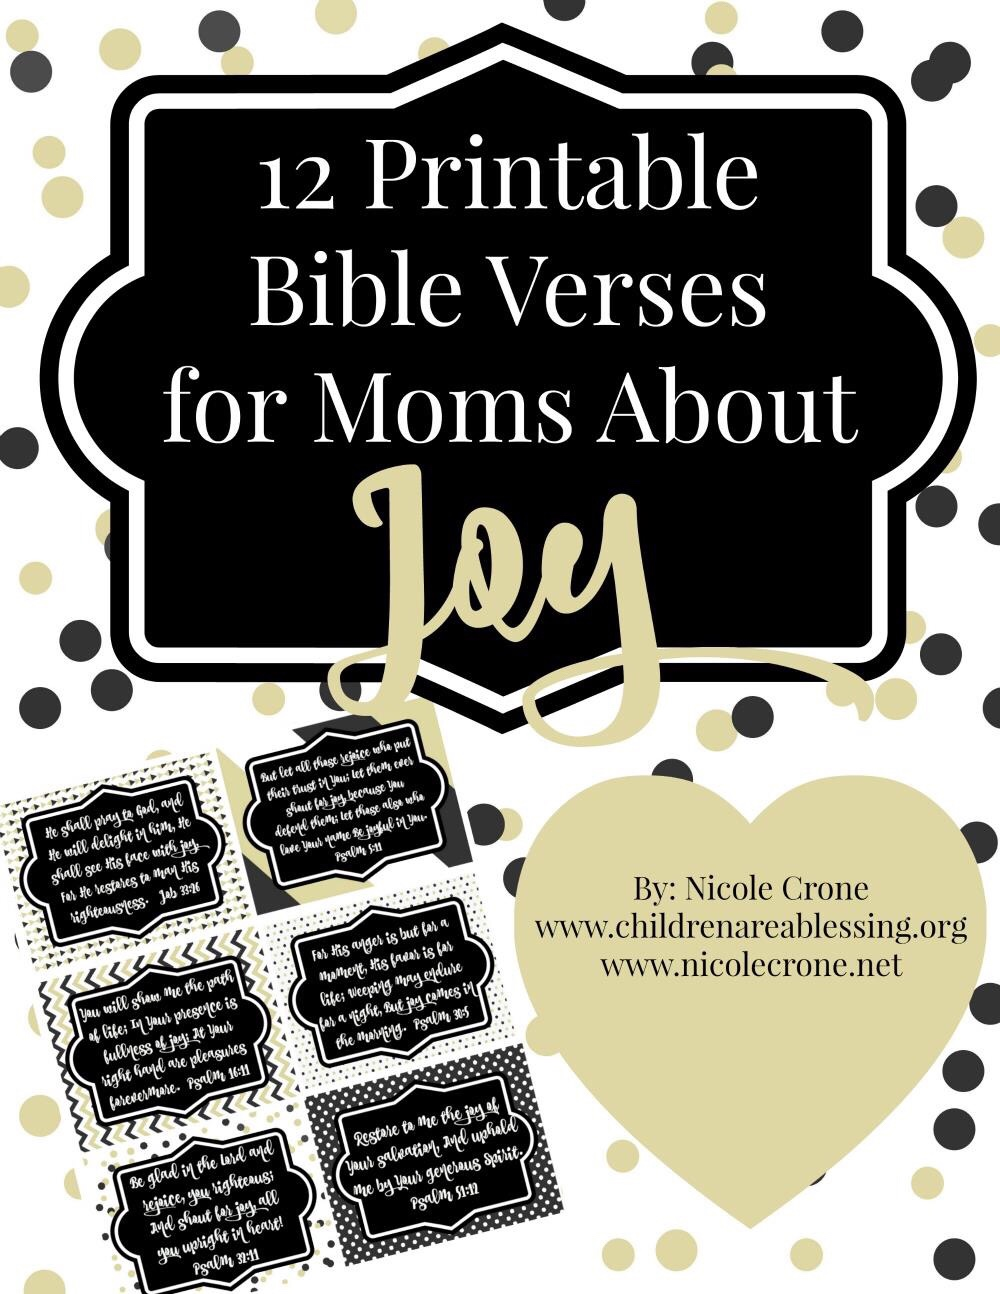 photograph regarding Printable Bible Verse Cards named Totally free Printable Pleasure Bible Verse Playing cards for Mothers Redeeming Household